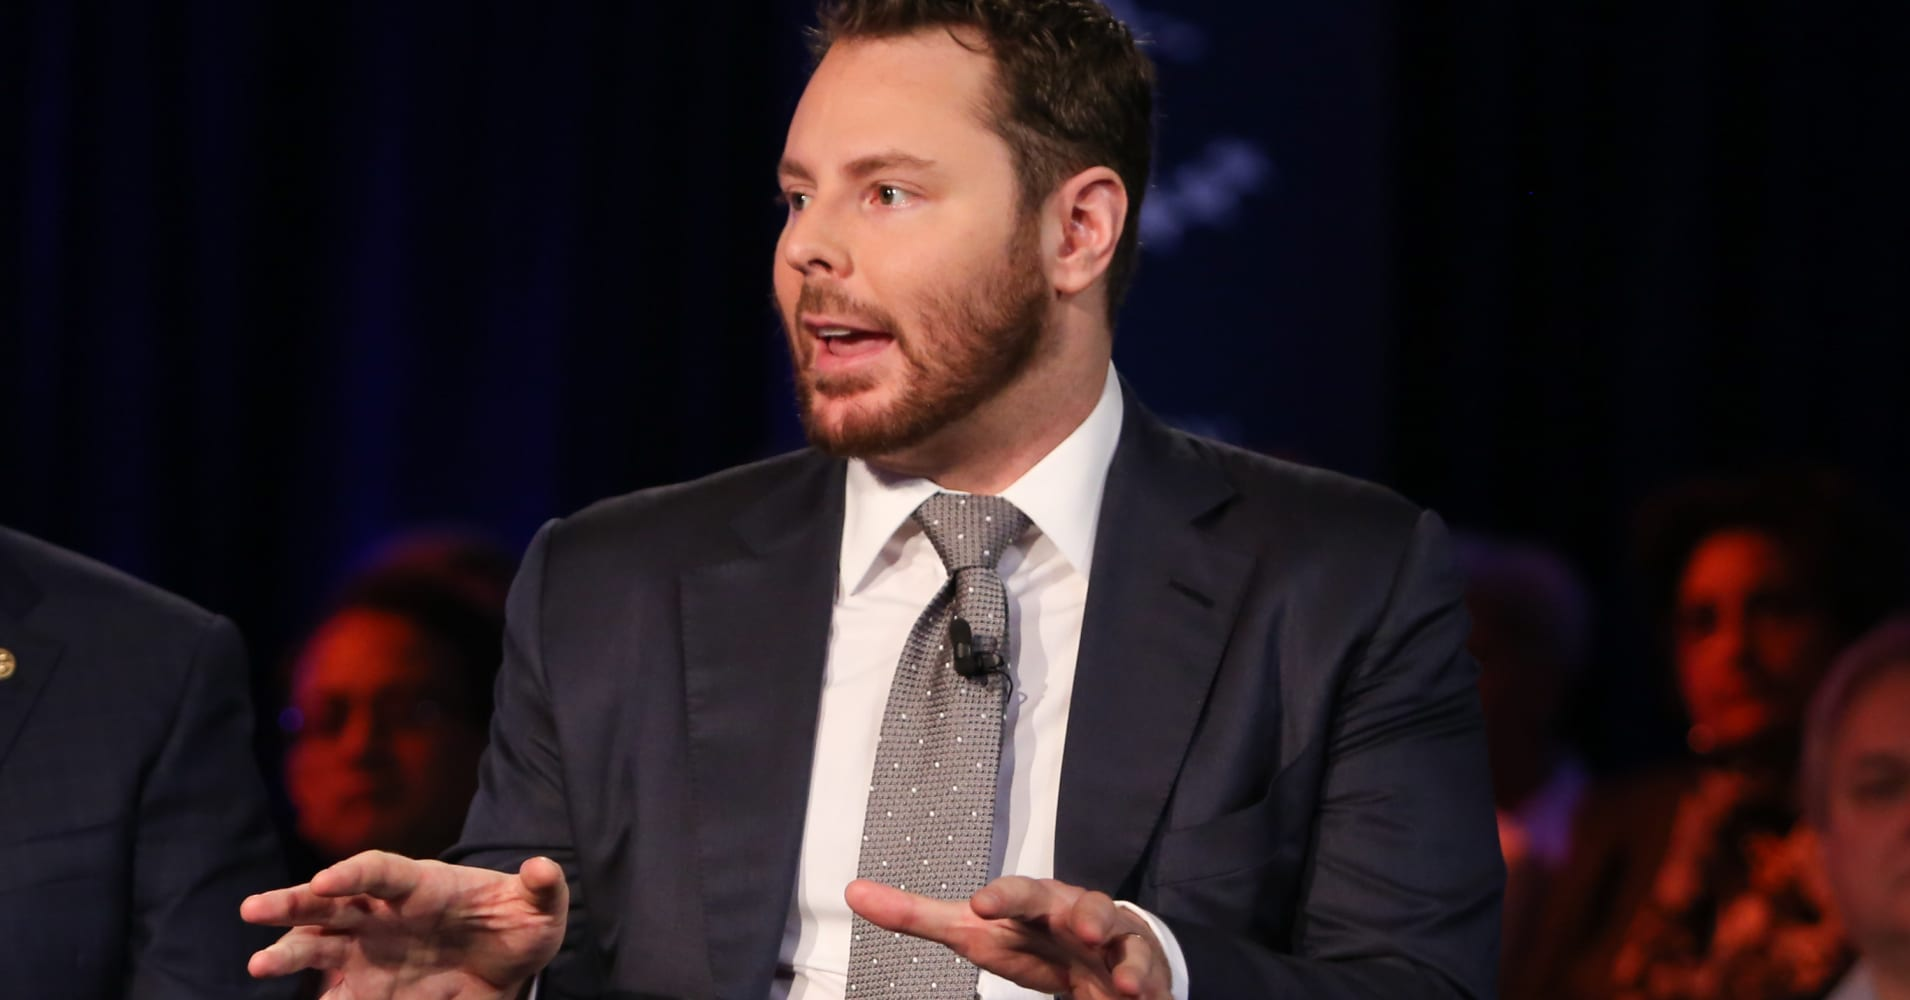 Facebook's Sean Parker says Amazon is not guaranteeing you any privacy